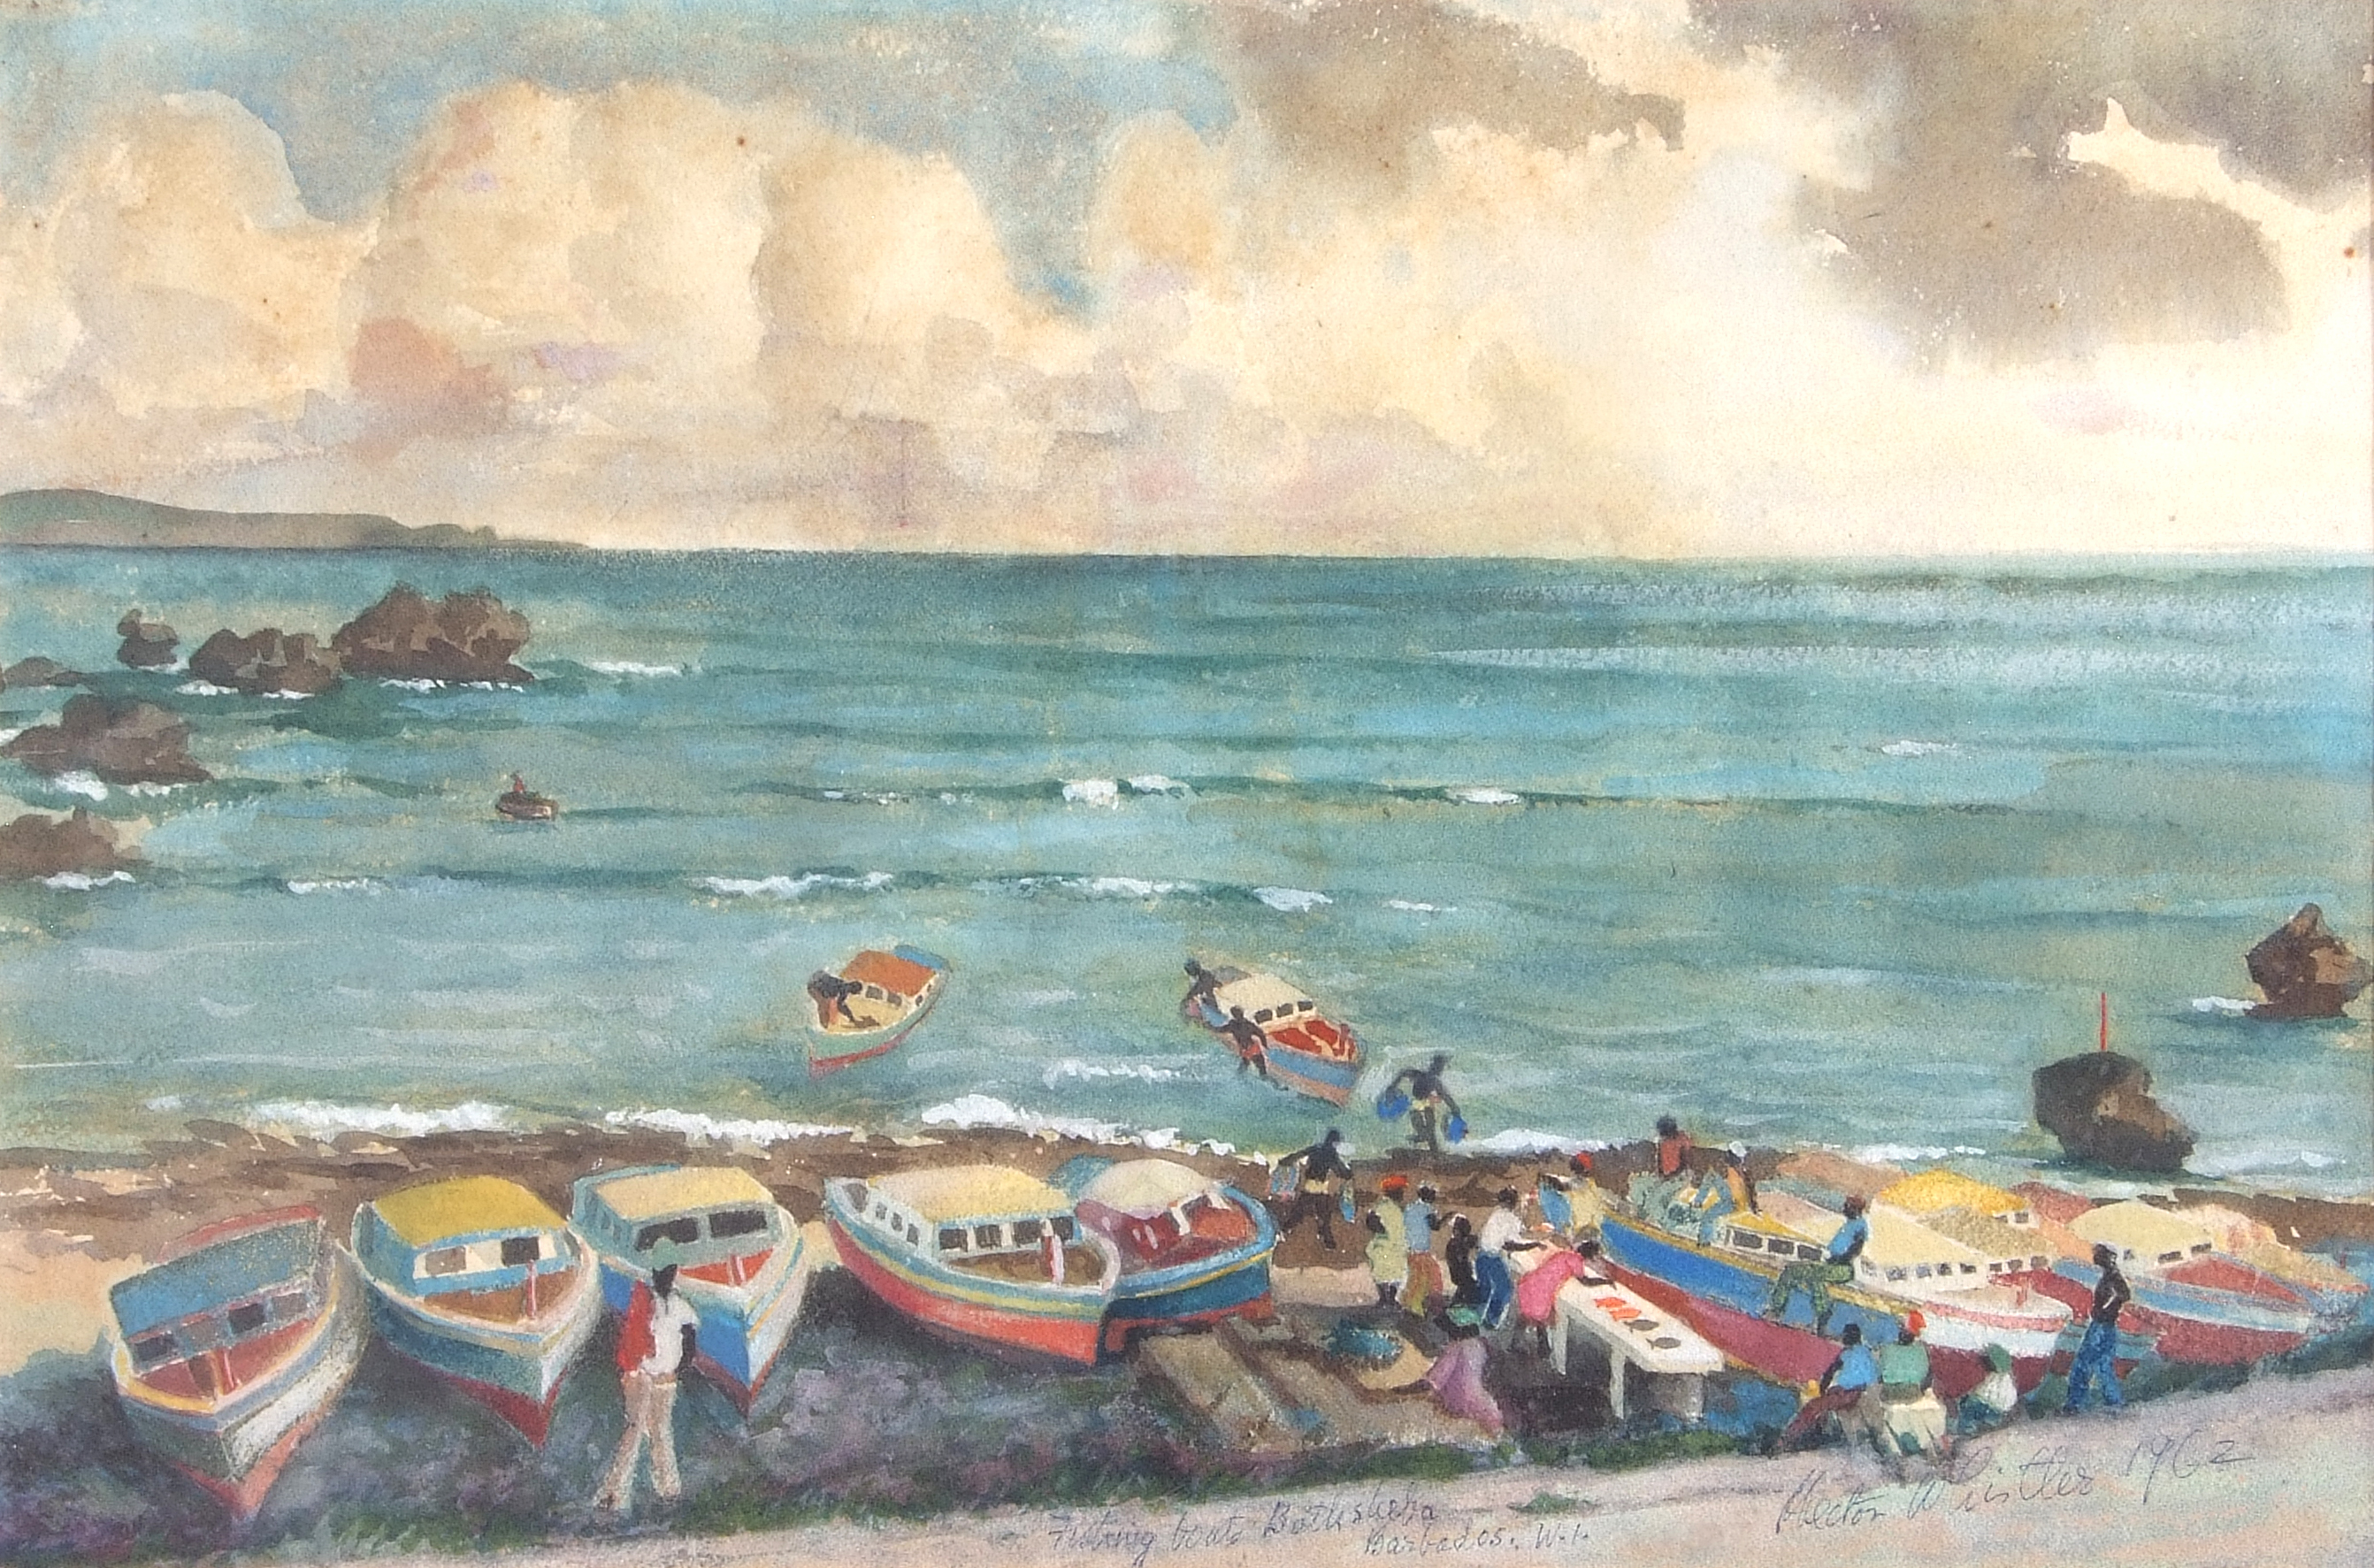 Hector Whister, Fishing boats, Barbados , Gouache on paper, signed , 12 x 18.5ins. - Image 2 of 2